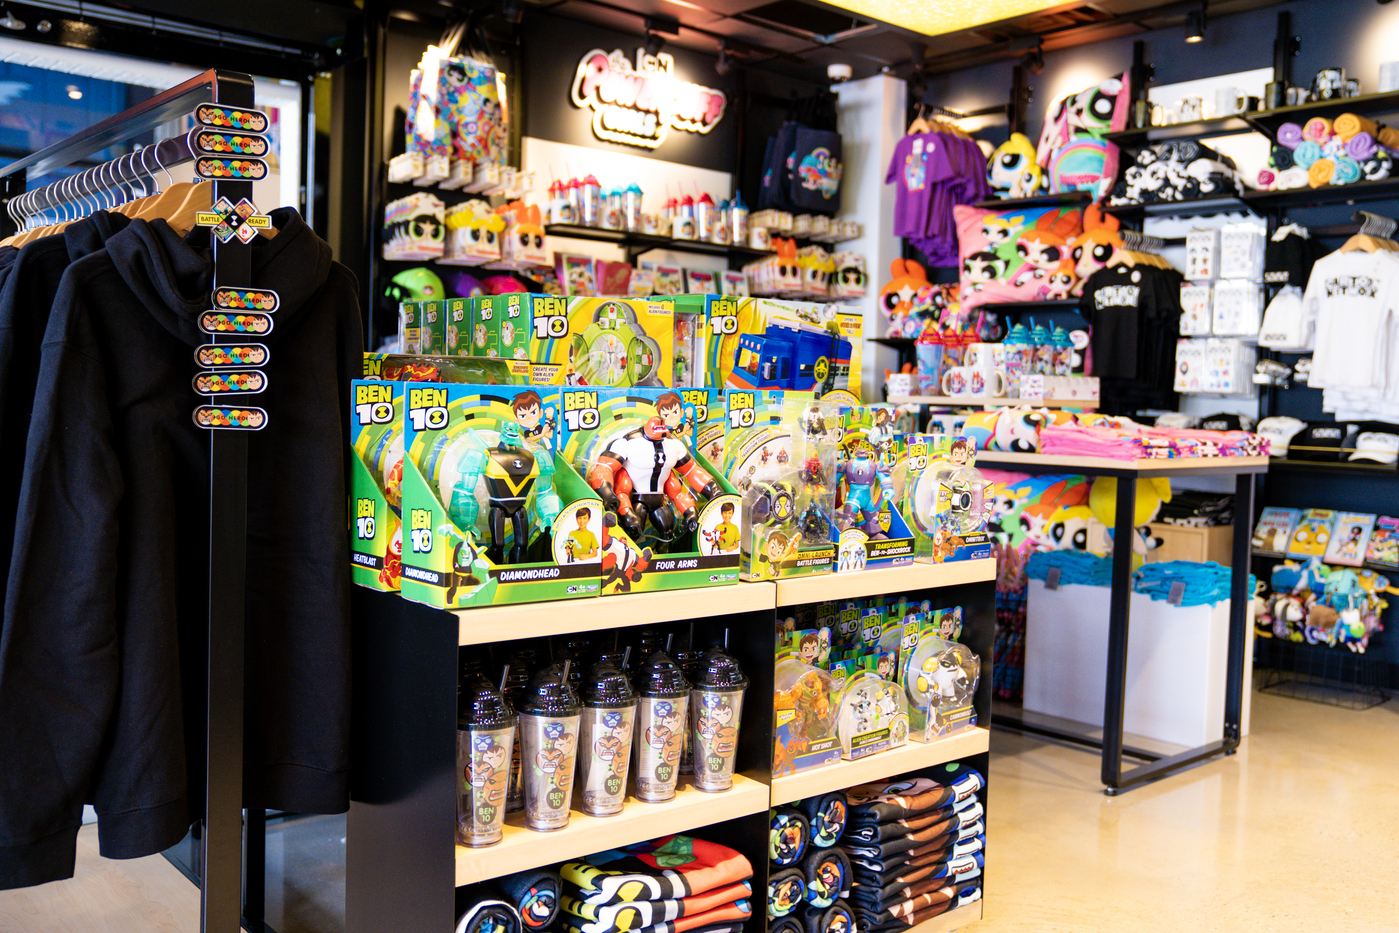 Close-up shot of colorful games and toys inside Cartoon Network Hotel store